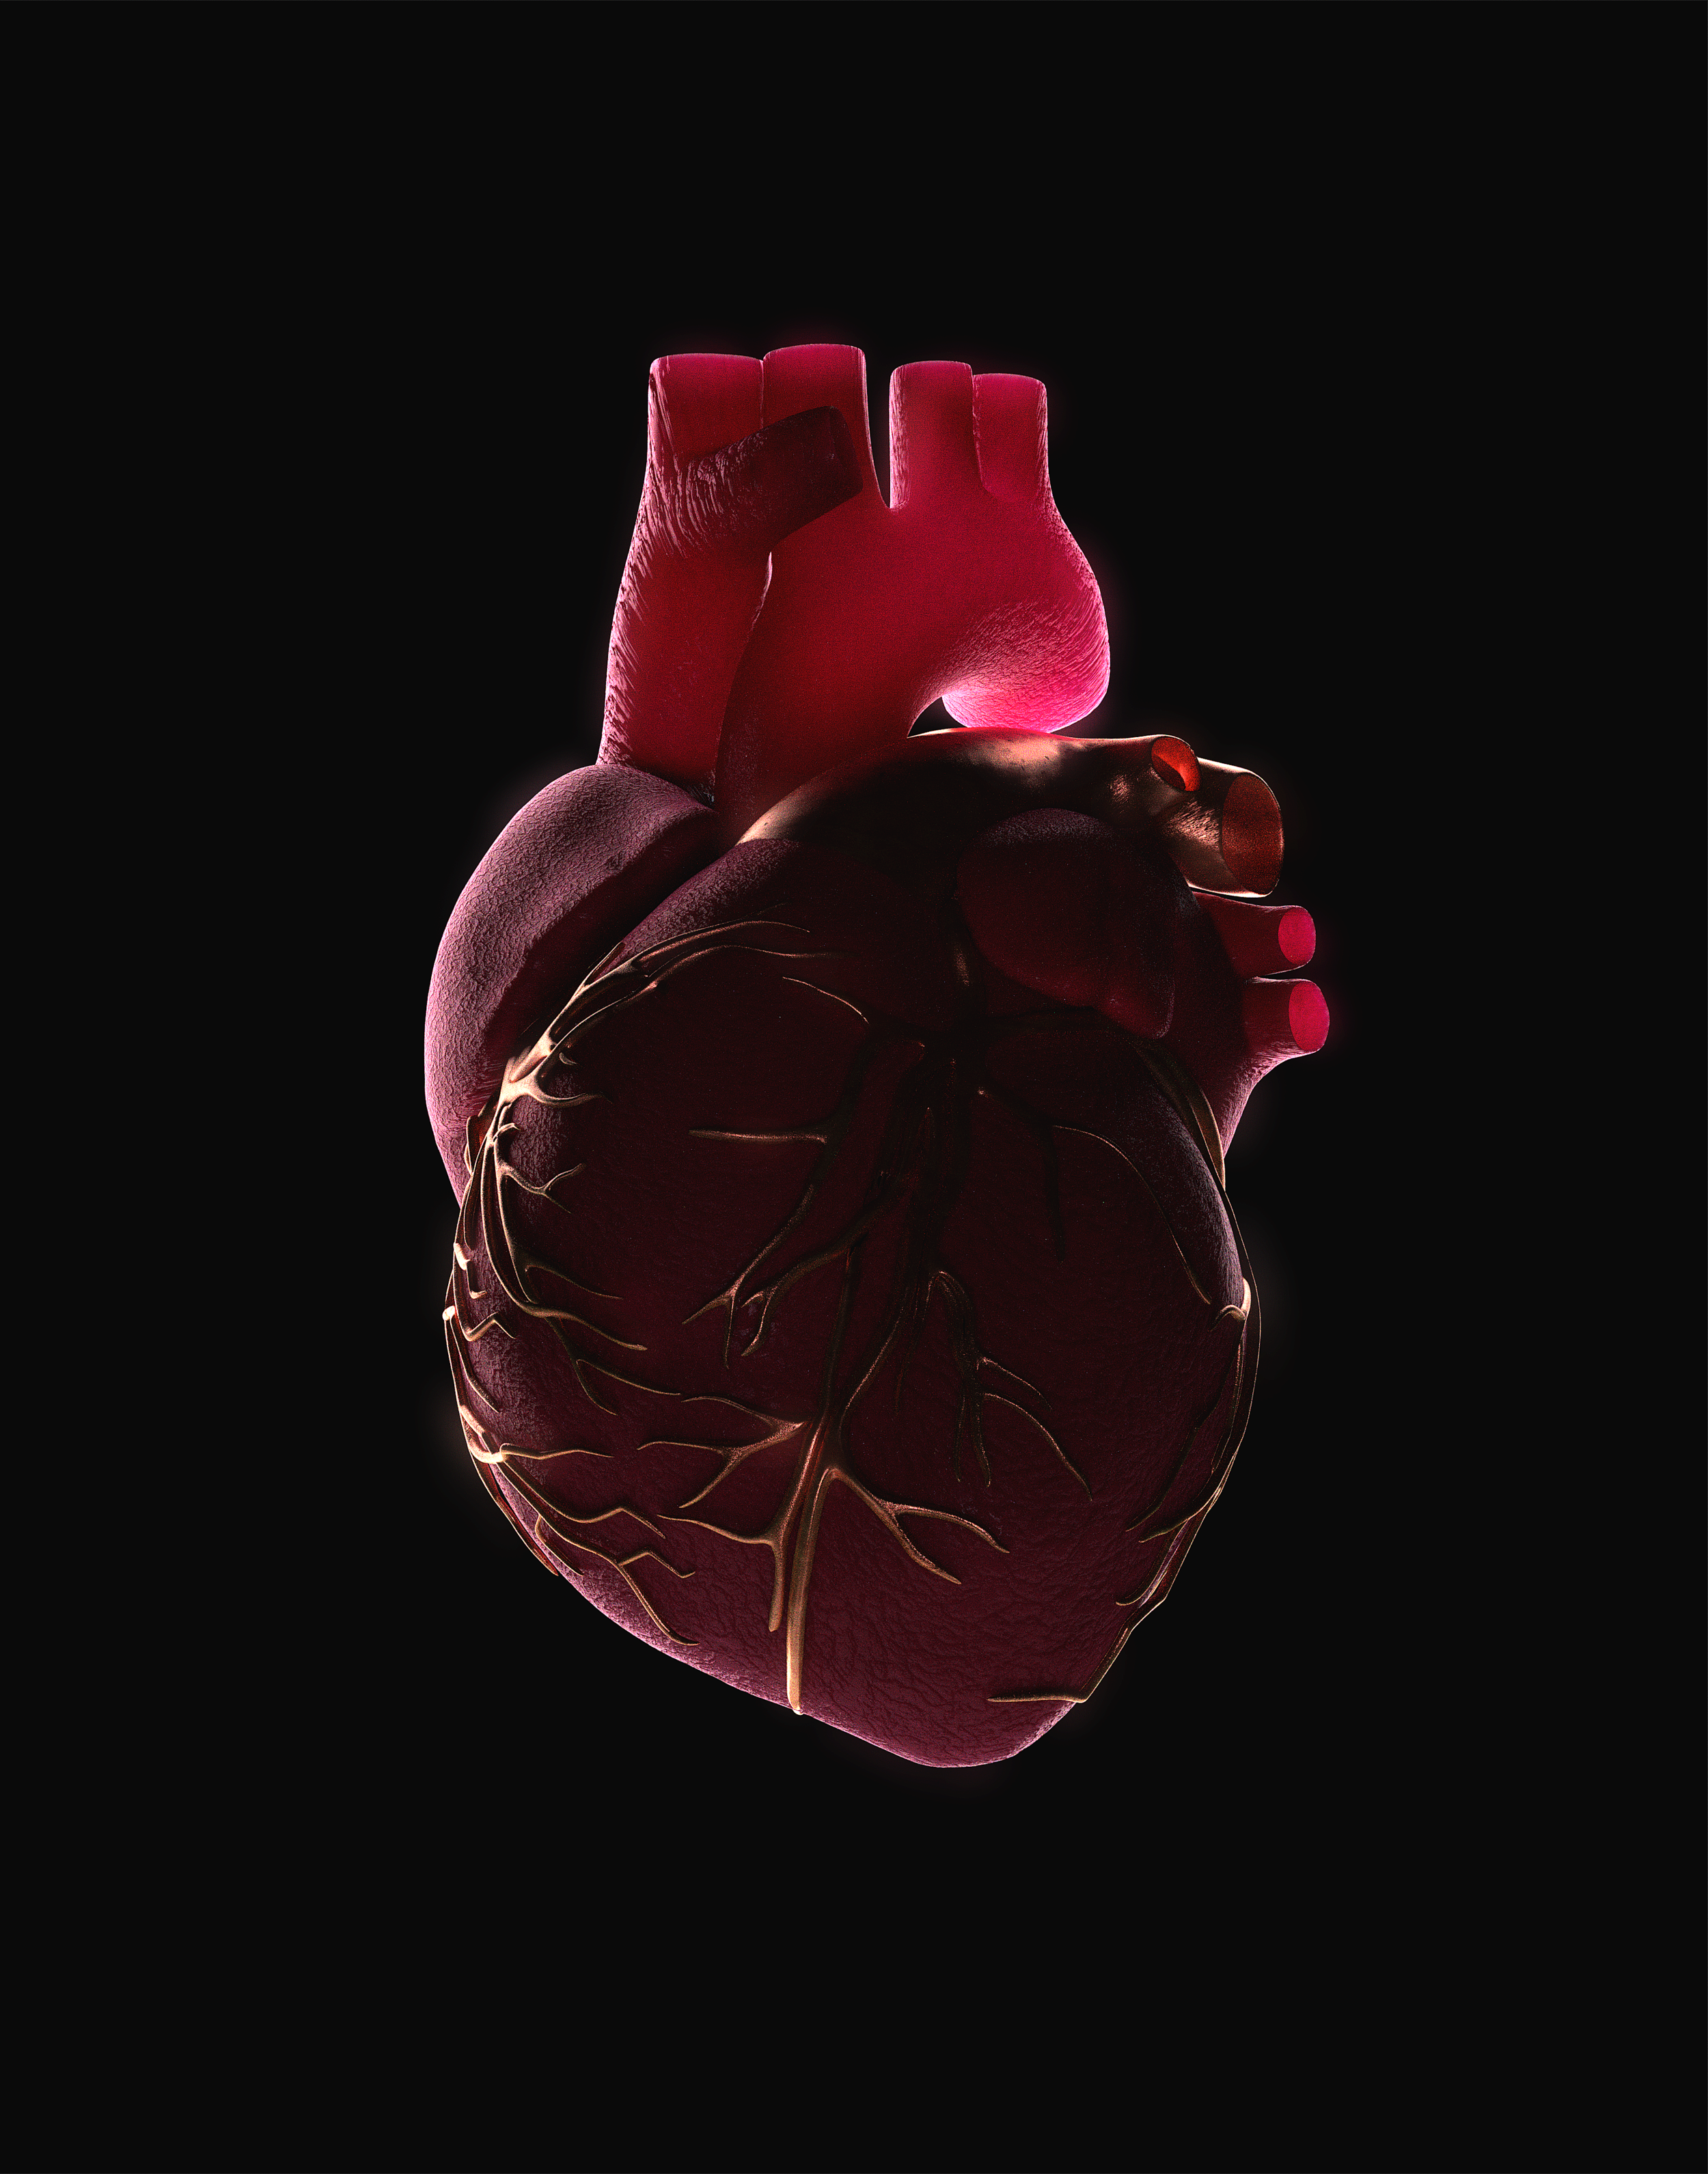 Heart_00000.png